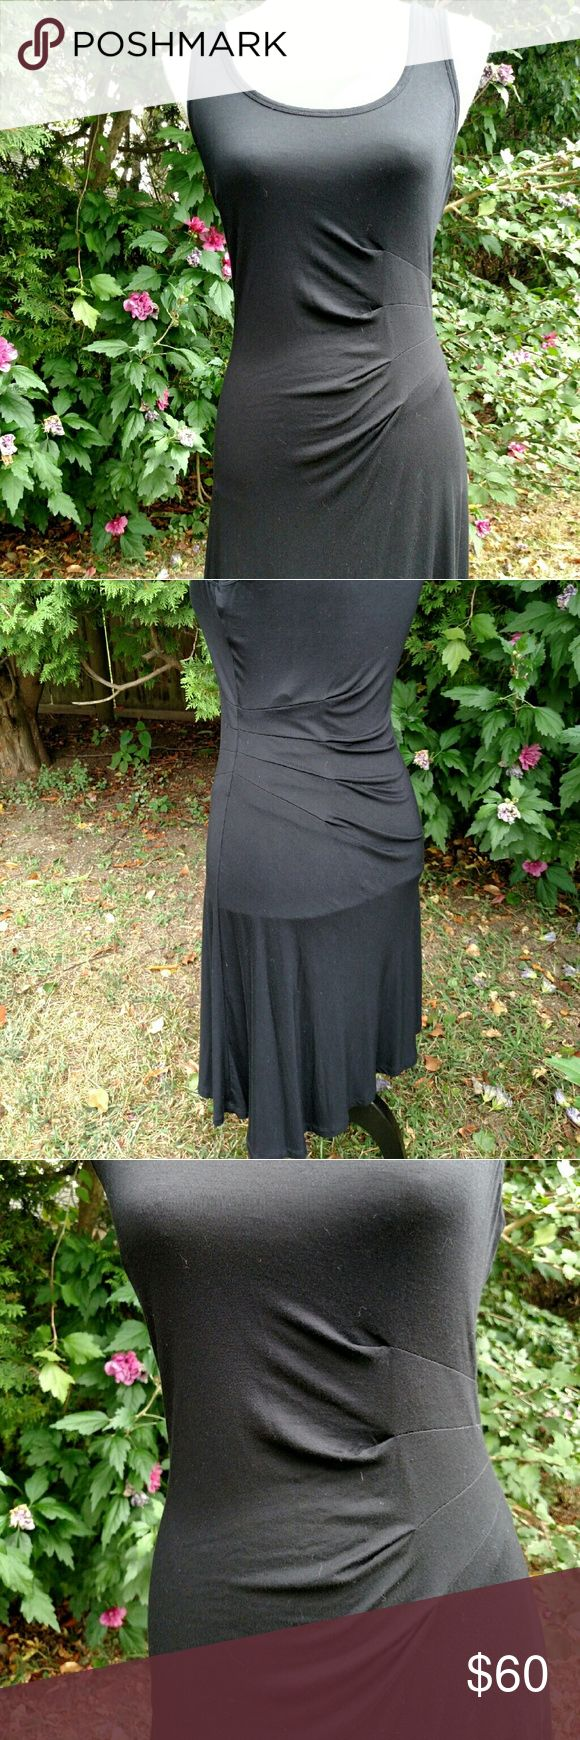 Calvin Klein Sexy Little Black Dress NWOT Gorgeous! Super soft cotton, very flattering fit! This beauty was washed once, but never worn! Calvin Klein Dresses